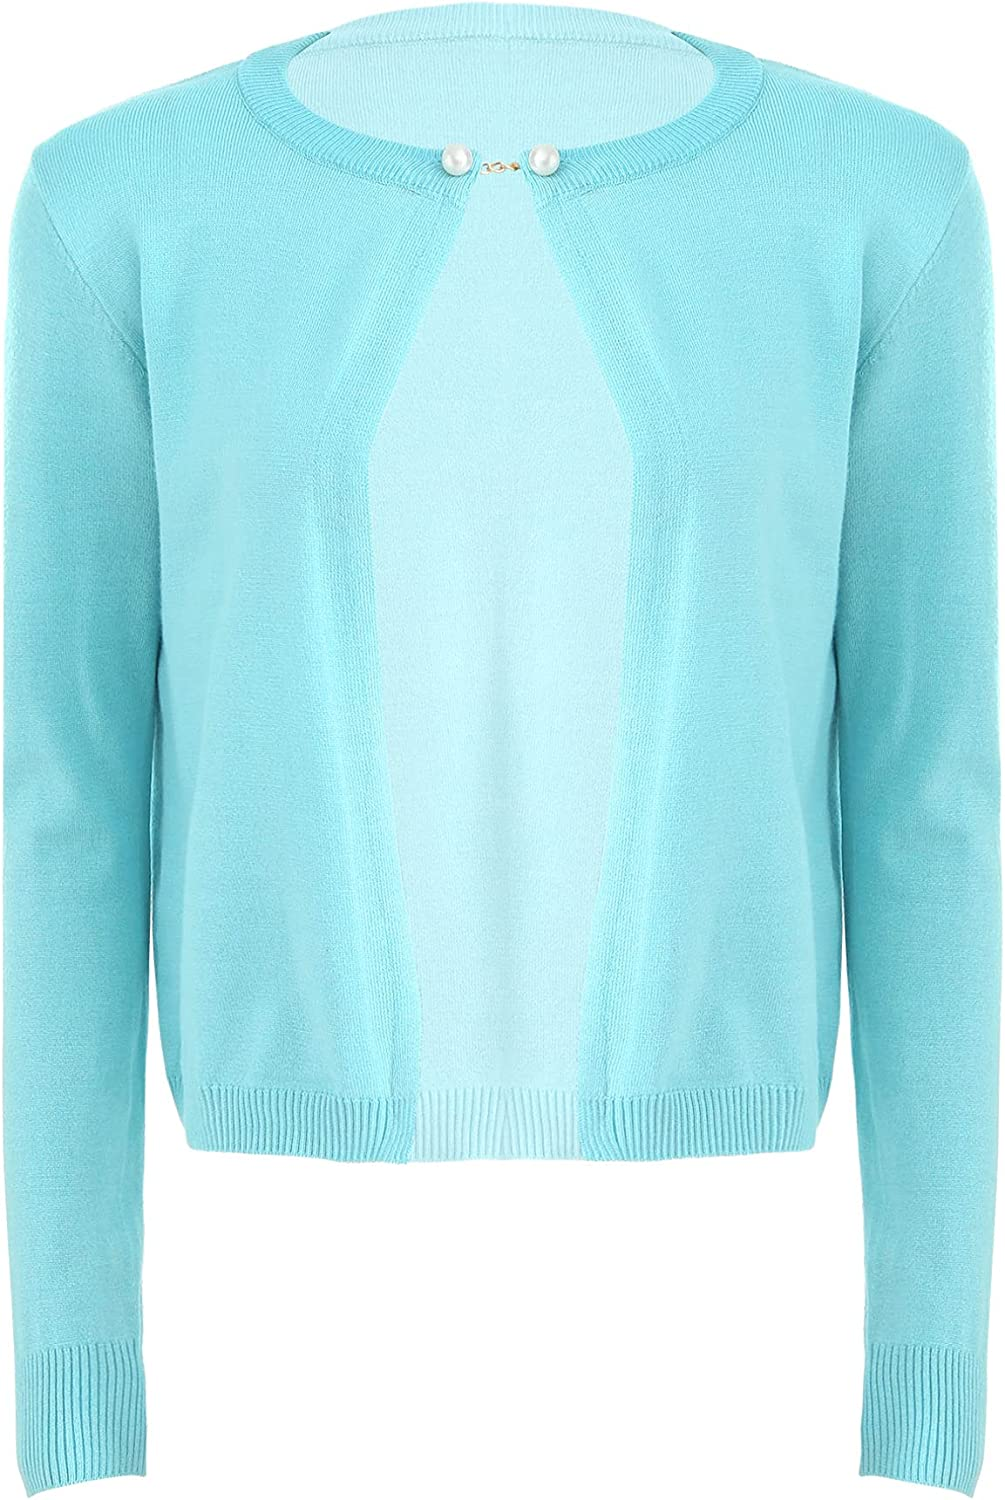 renvena Womens Round Neck Long Sleeve Basic Knit Cardigan Ribbed Outerwear Sweater Coats